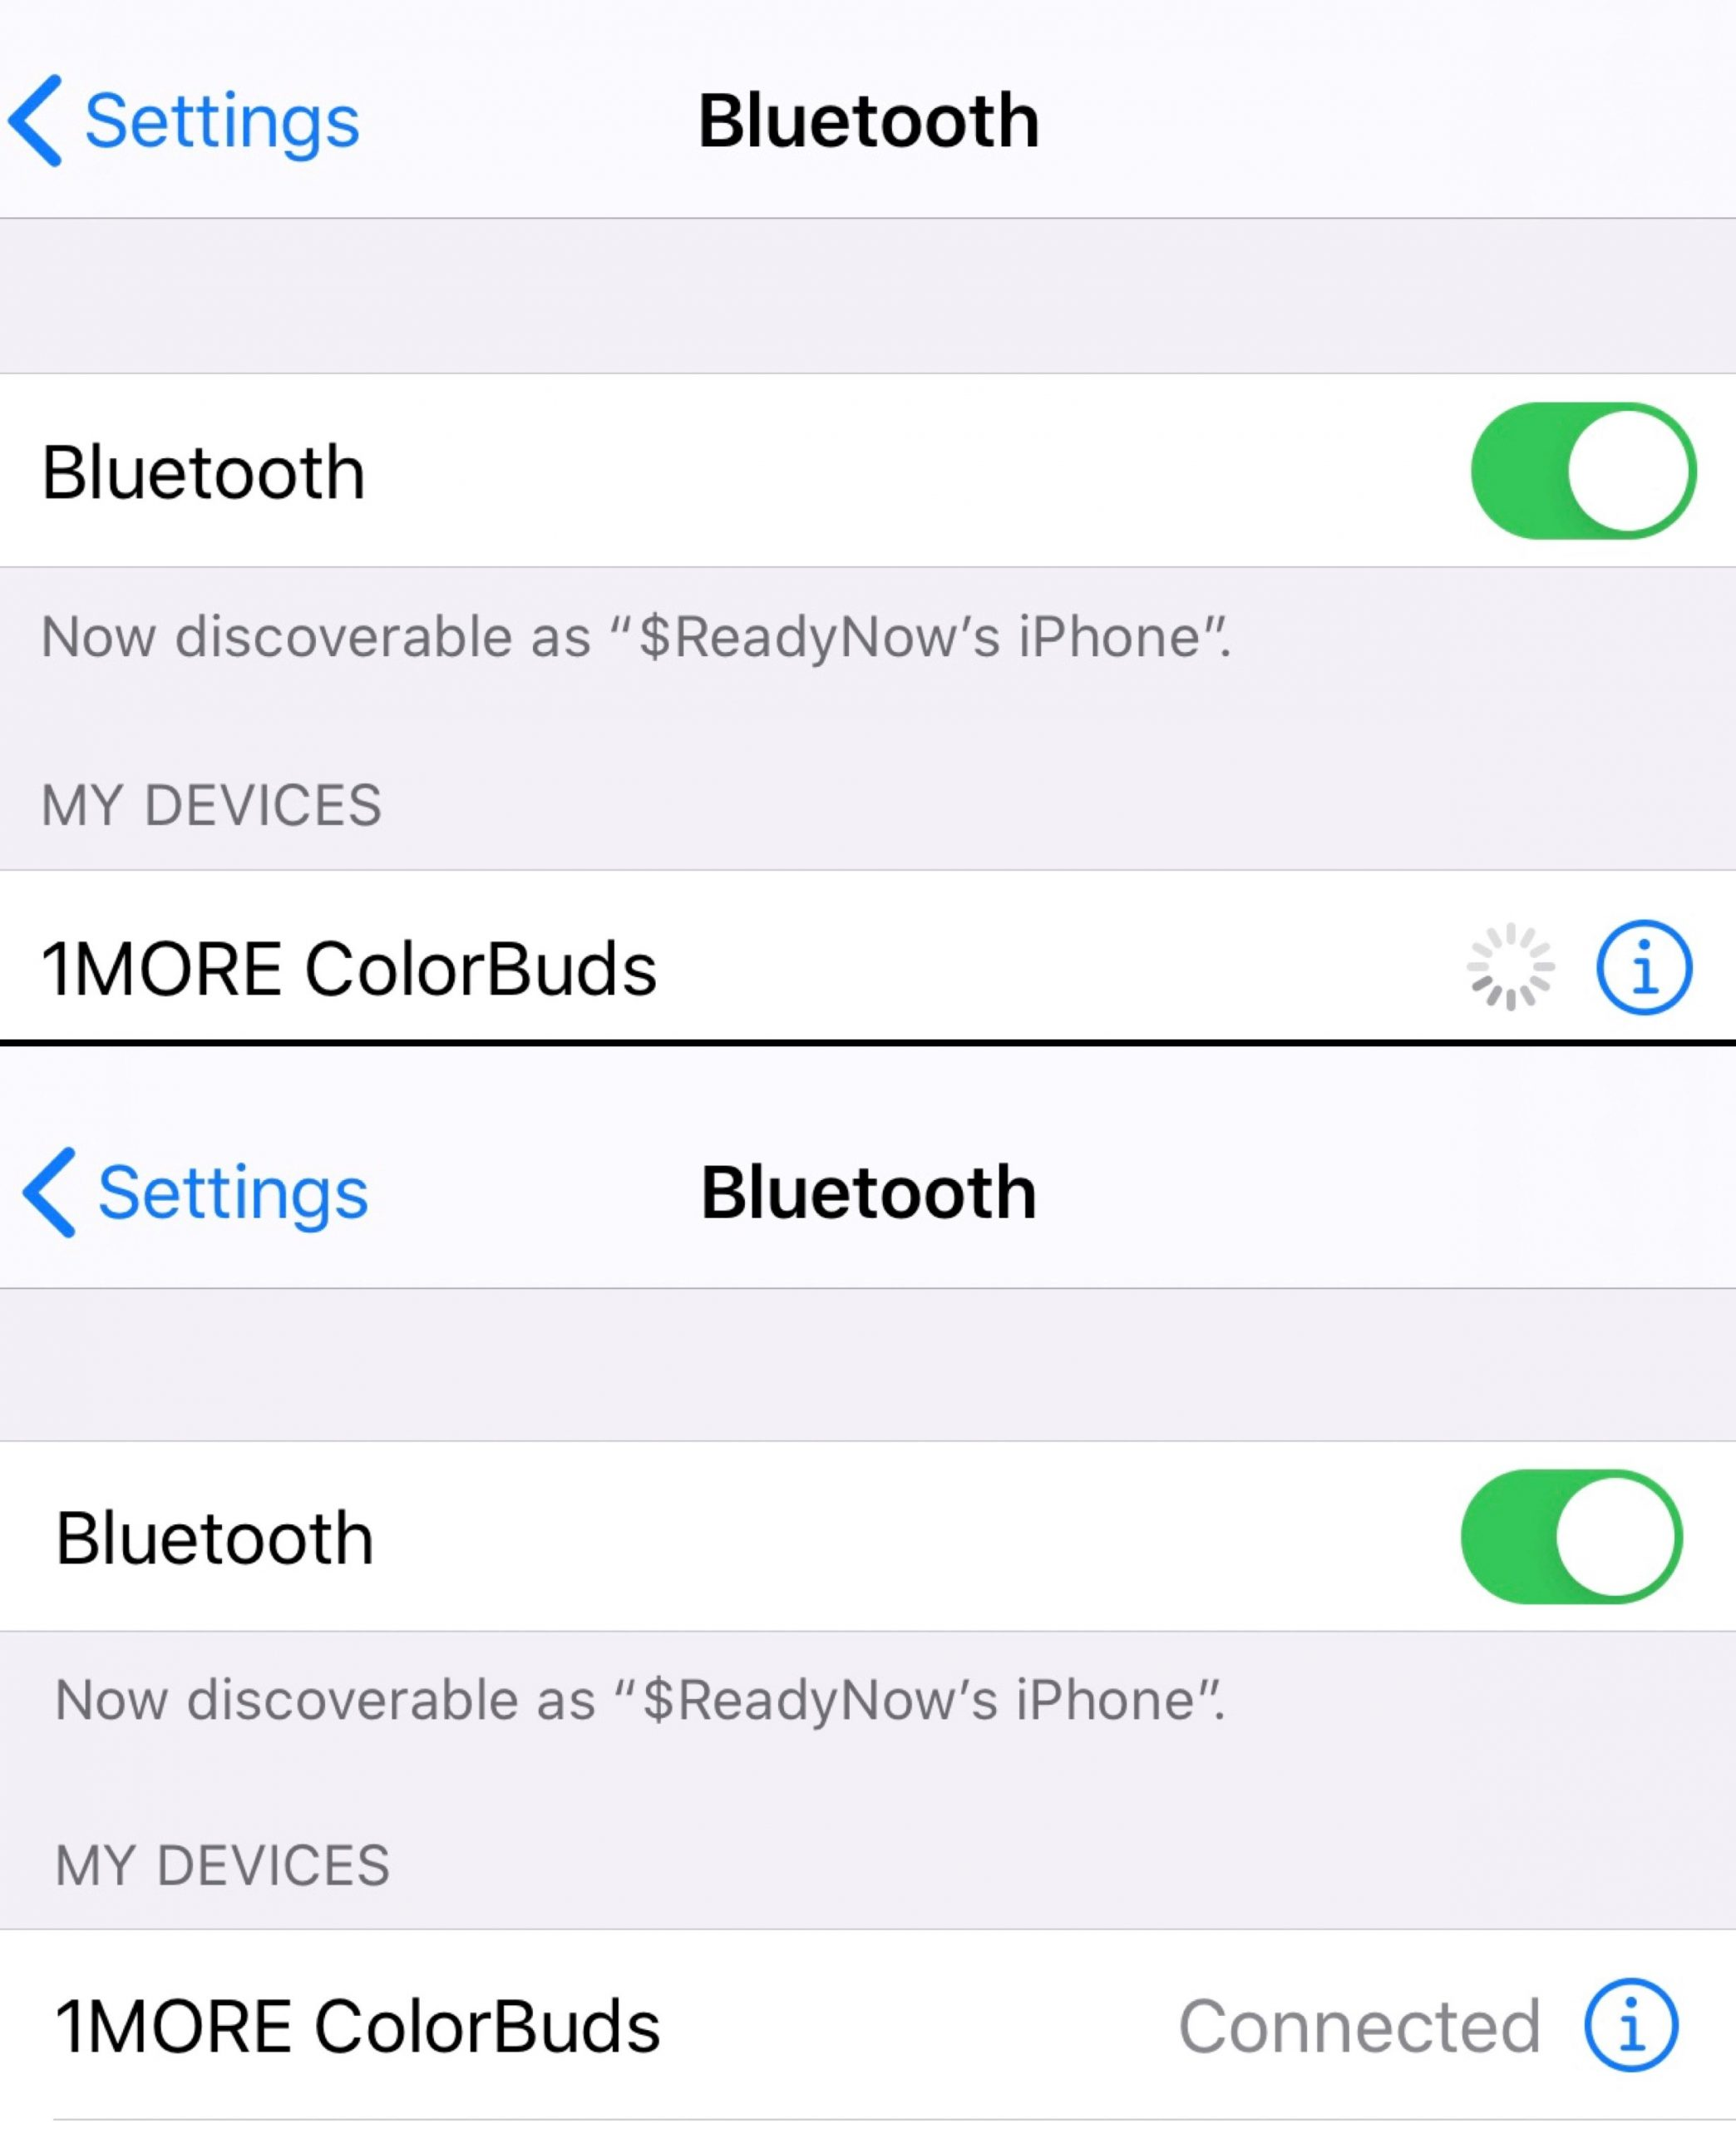 1More-Colorbuds-Phone-1